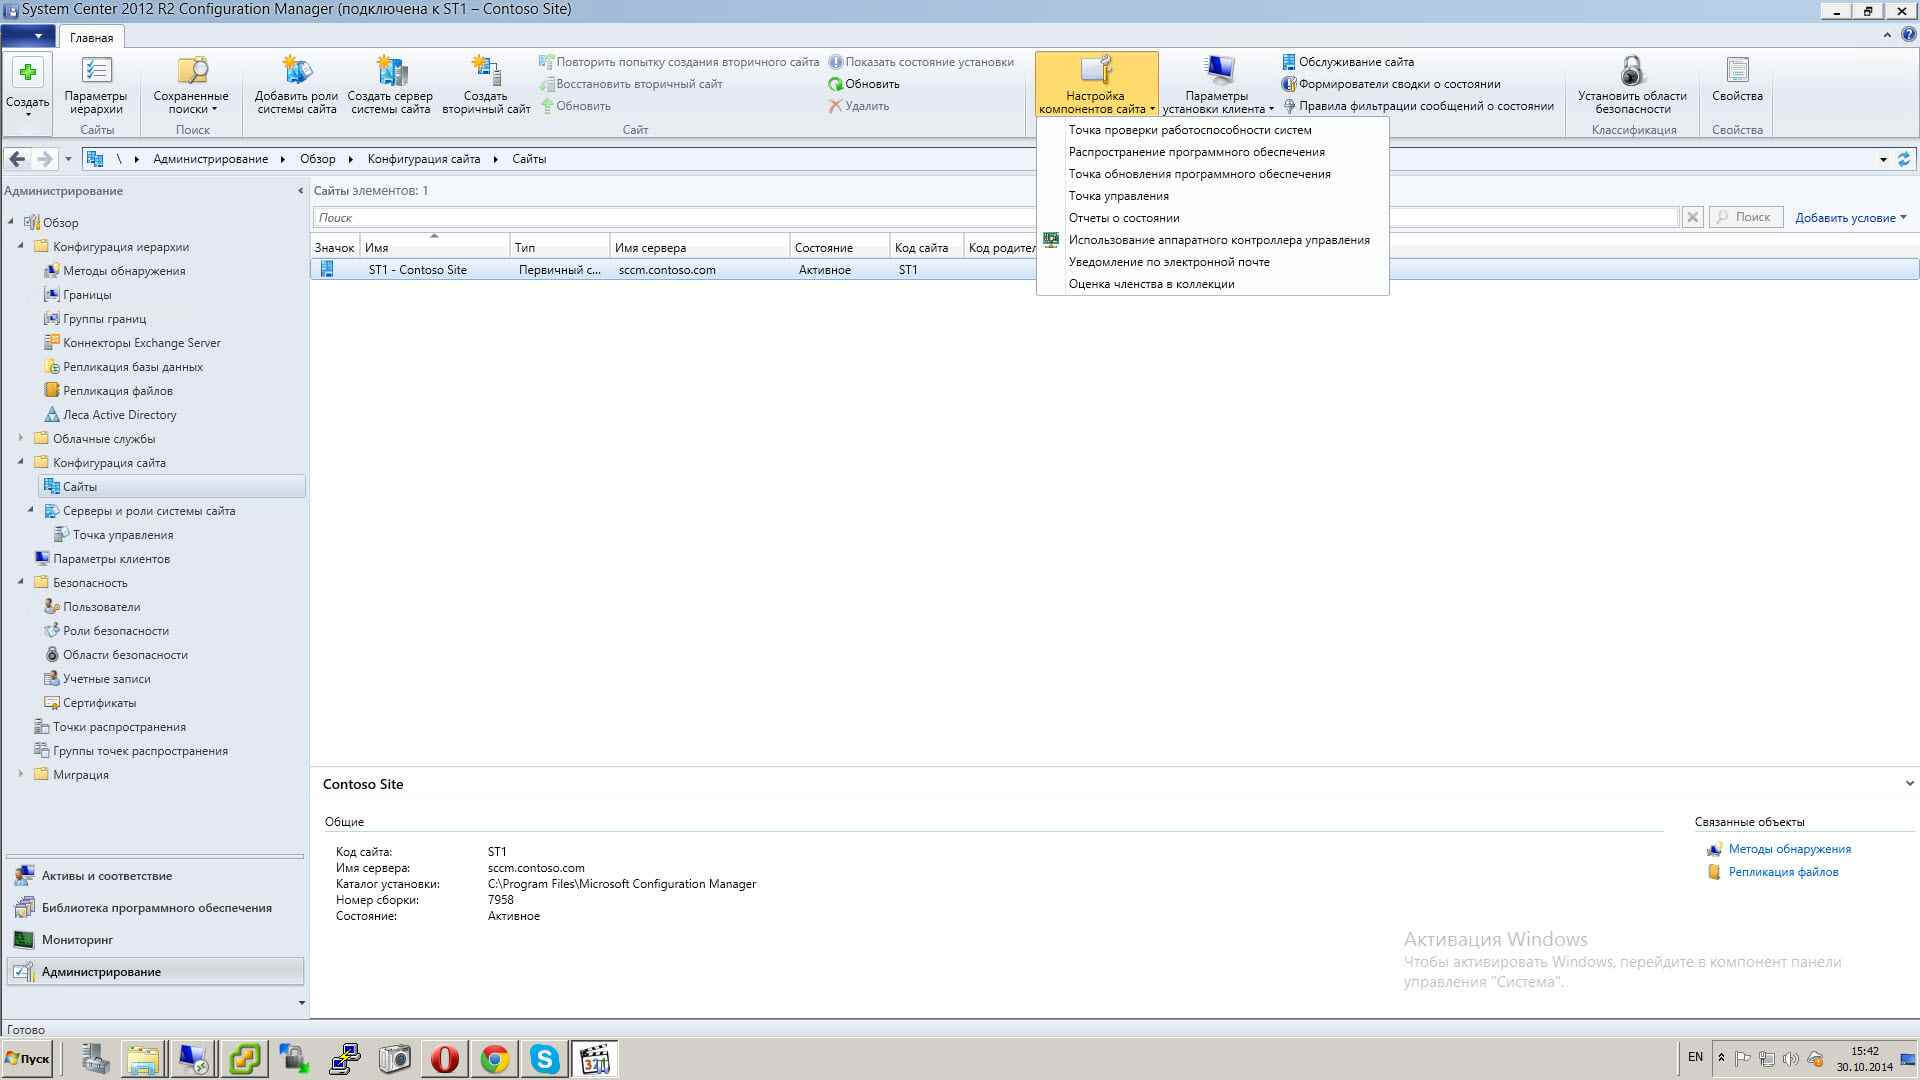 Как установить SCCM (System Center Configuration Manager) 2012R2 в windows server 2012R2 -3 часть. Базовая настройка site server-45